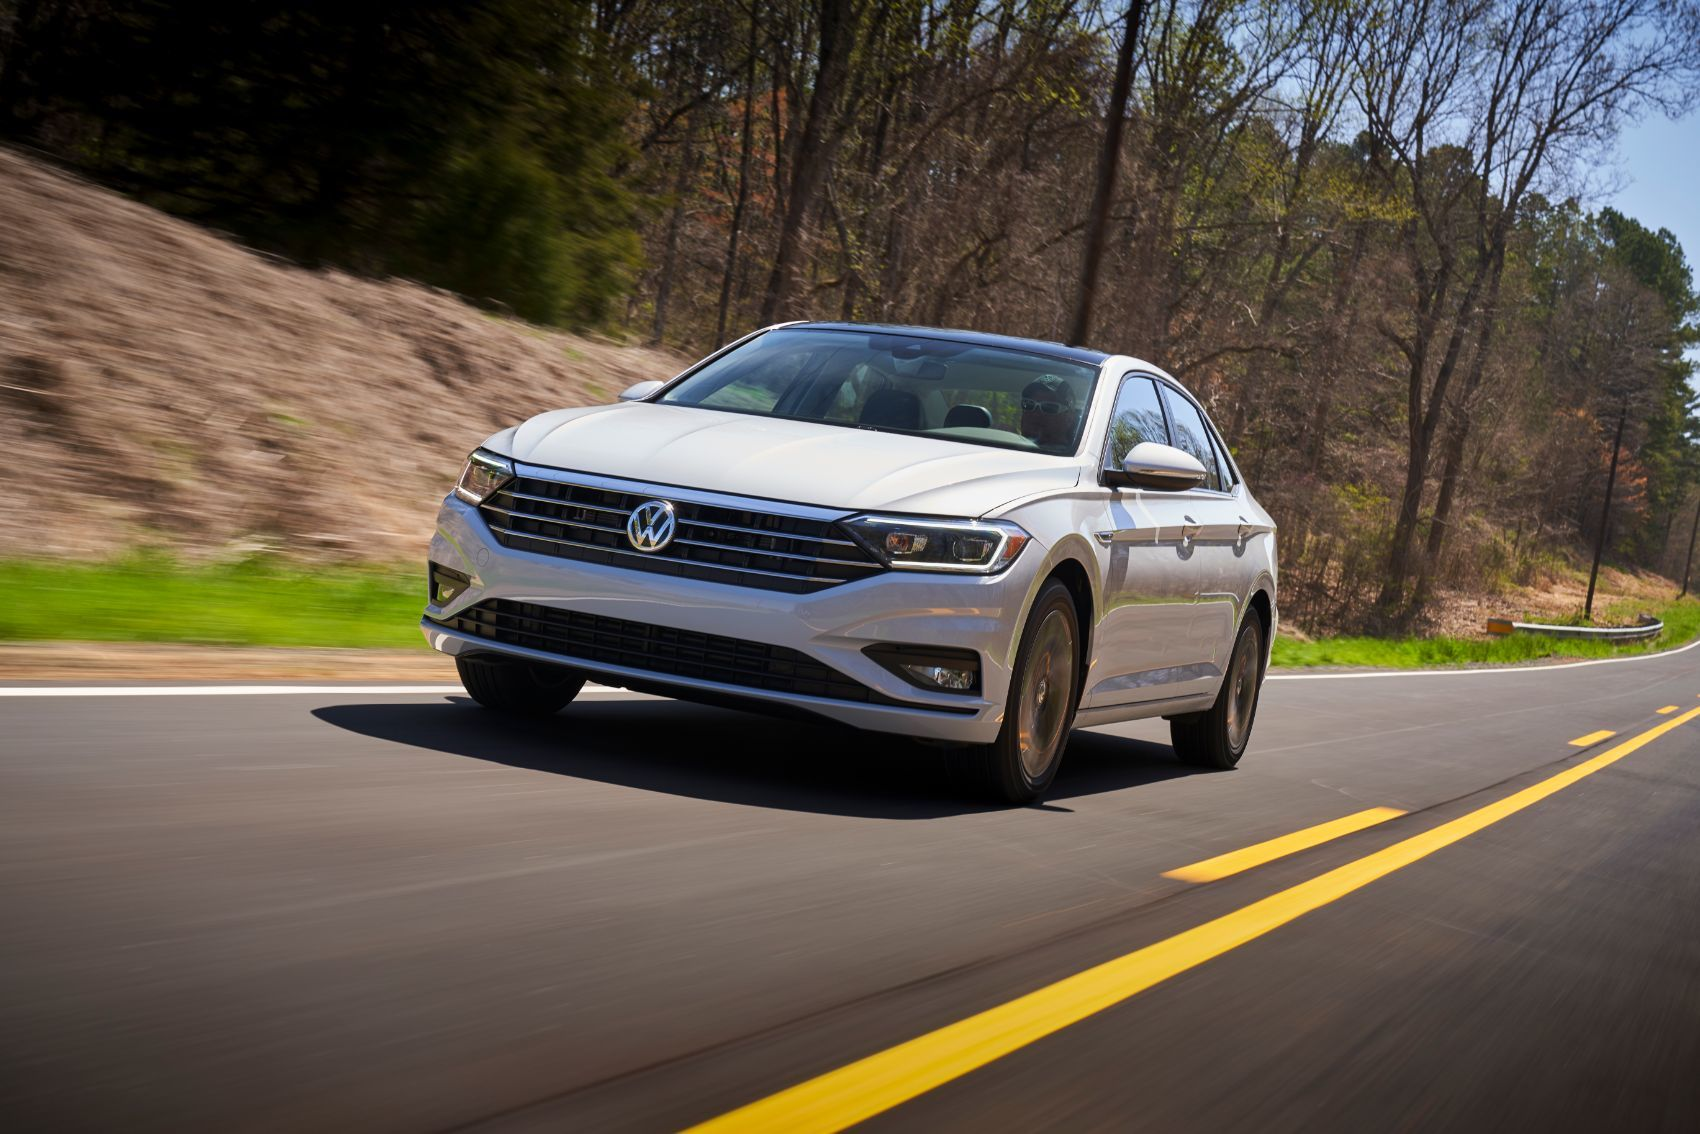 2019 VW Jetta SEL Premium Review: An Upscale, Fuel Efficient Package 15